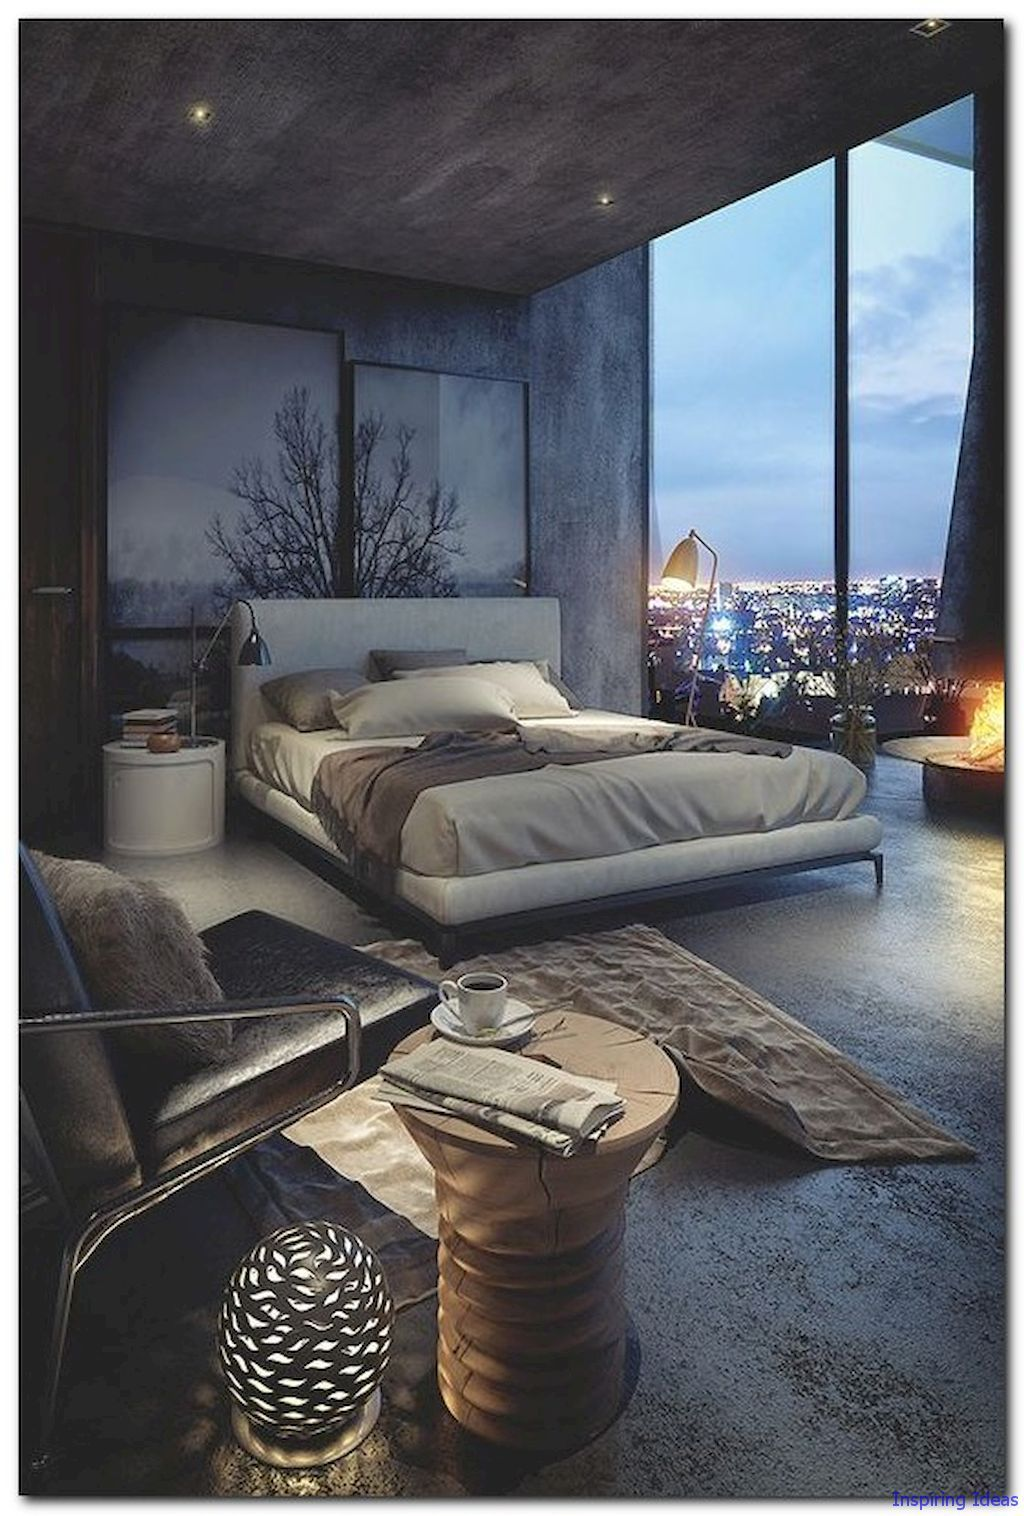 Apartment decorating ideas for a single guy is a creative mix of comfortable functionality and ergonomic design with masculine vibe. & 47 Great Apartment Decorating Ideas for Men | Home Decor Ideas For ...